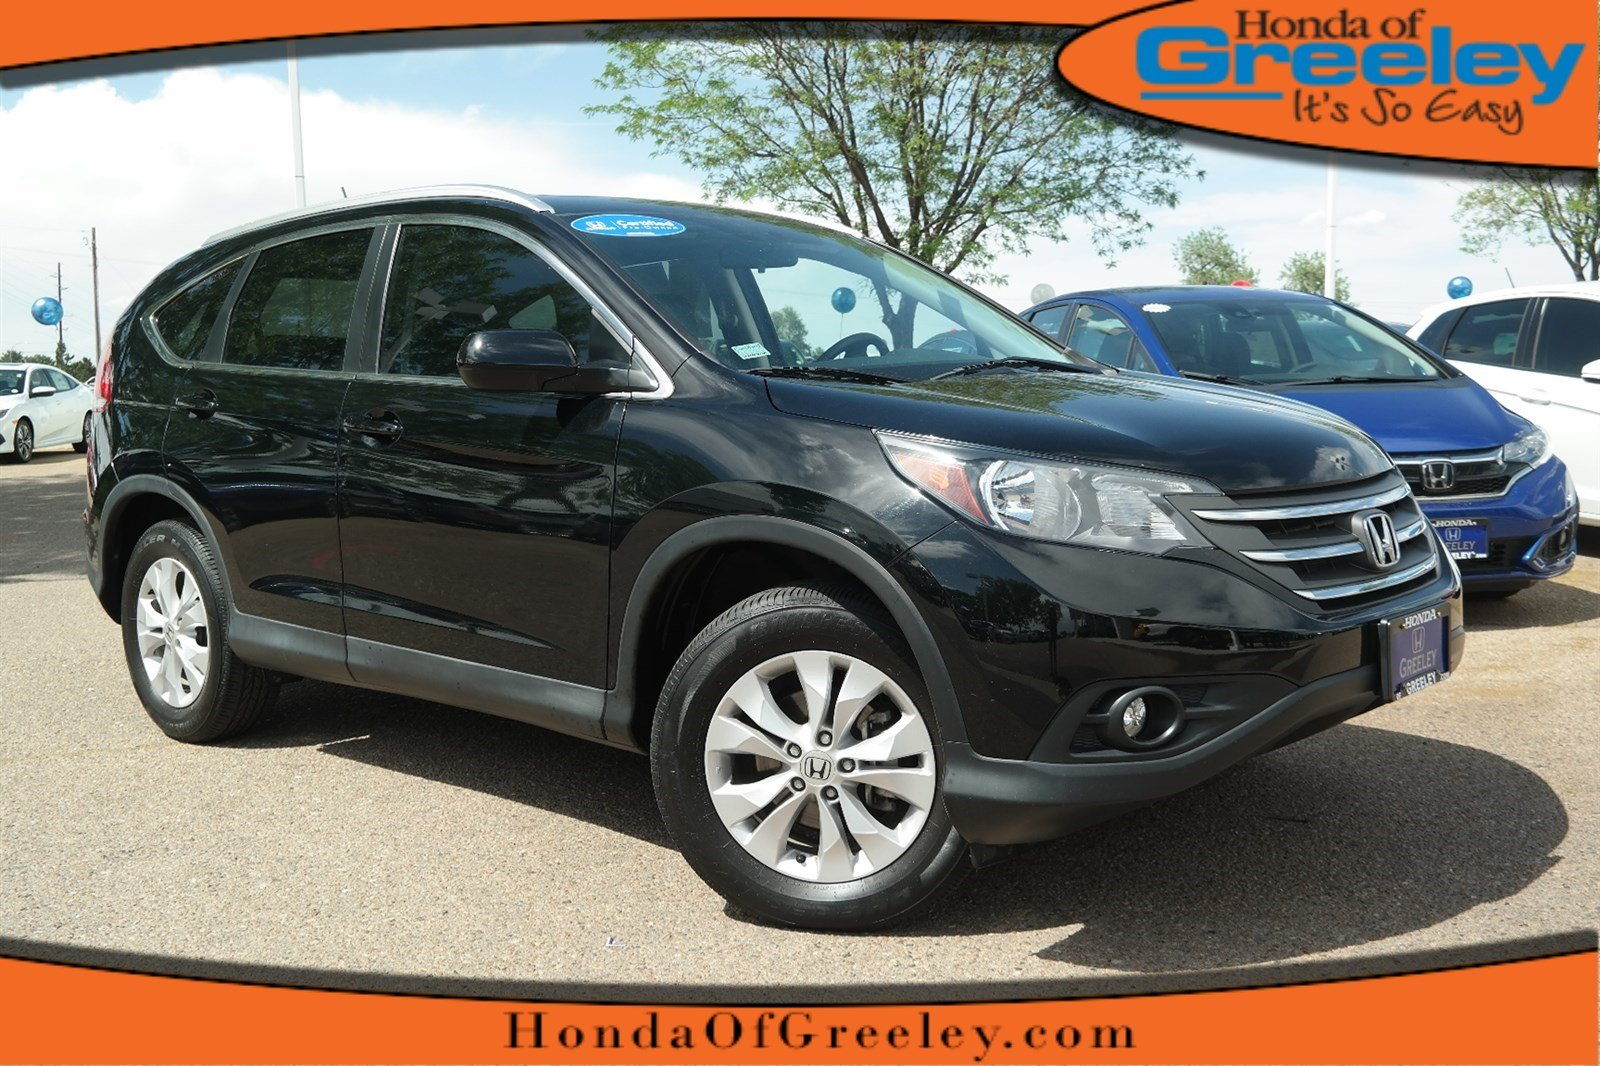 Photo Certified Pre-Owned 2014 Honda CR-V EX-L All Wheel Drive Sport Utility For Sale in Greeley, Loveland, Windsor, Fort Collins, Longmont, Colorado